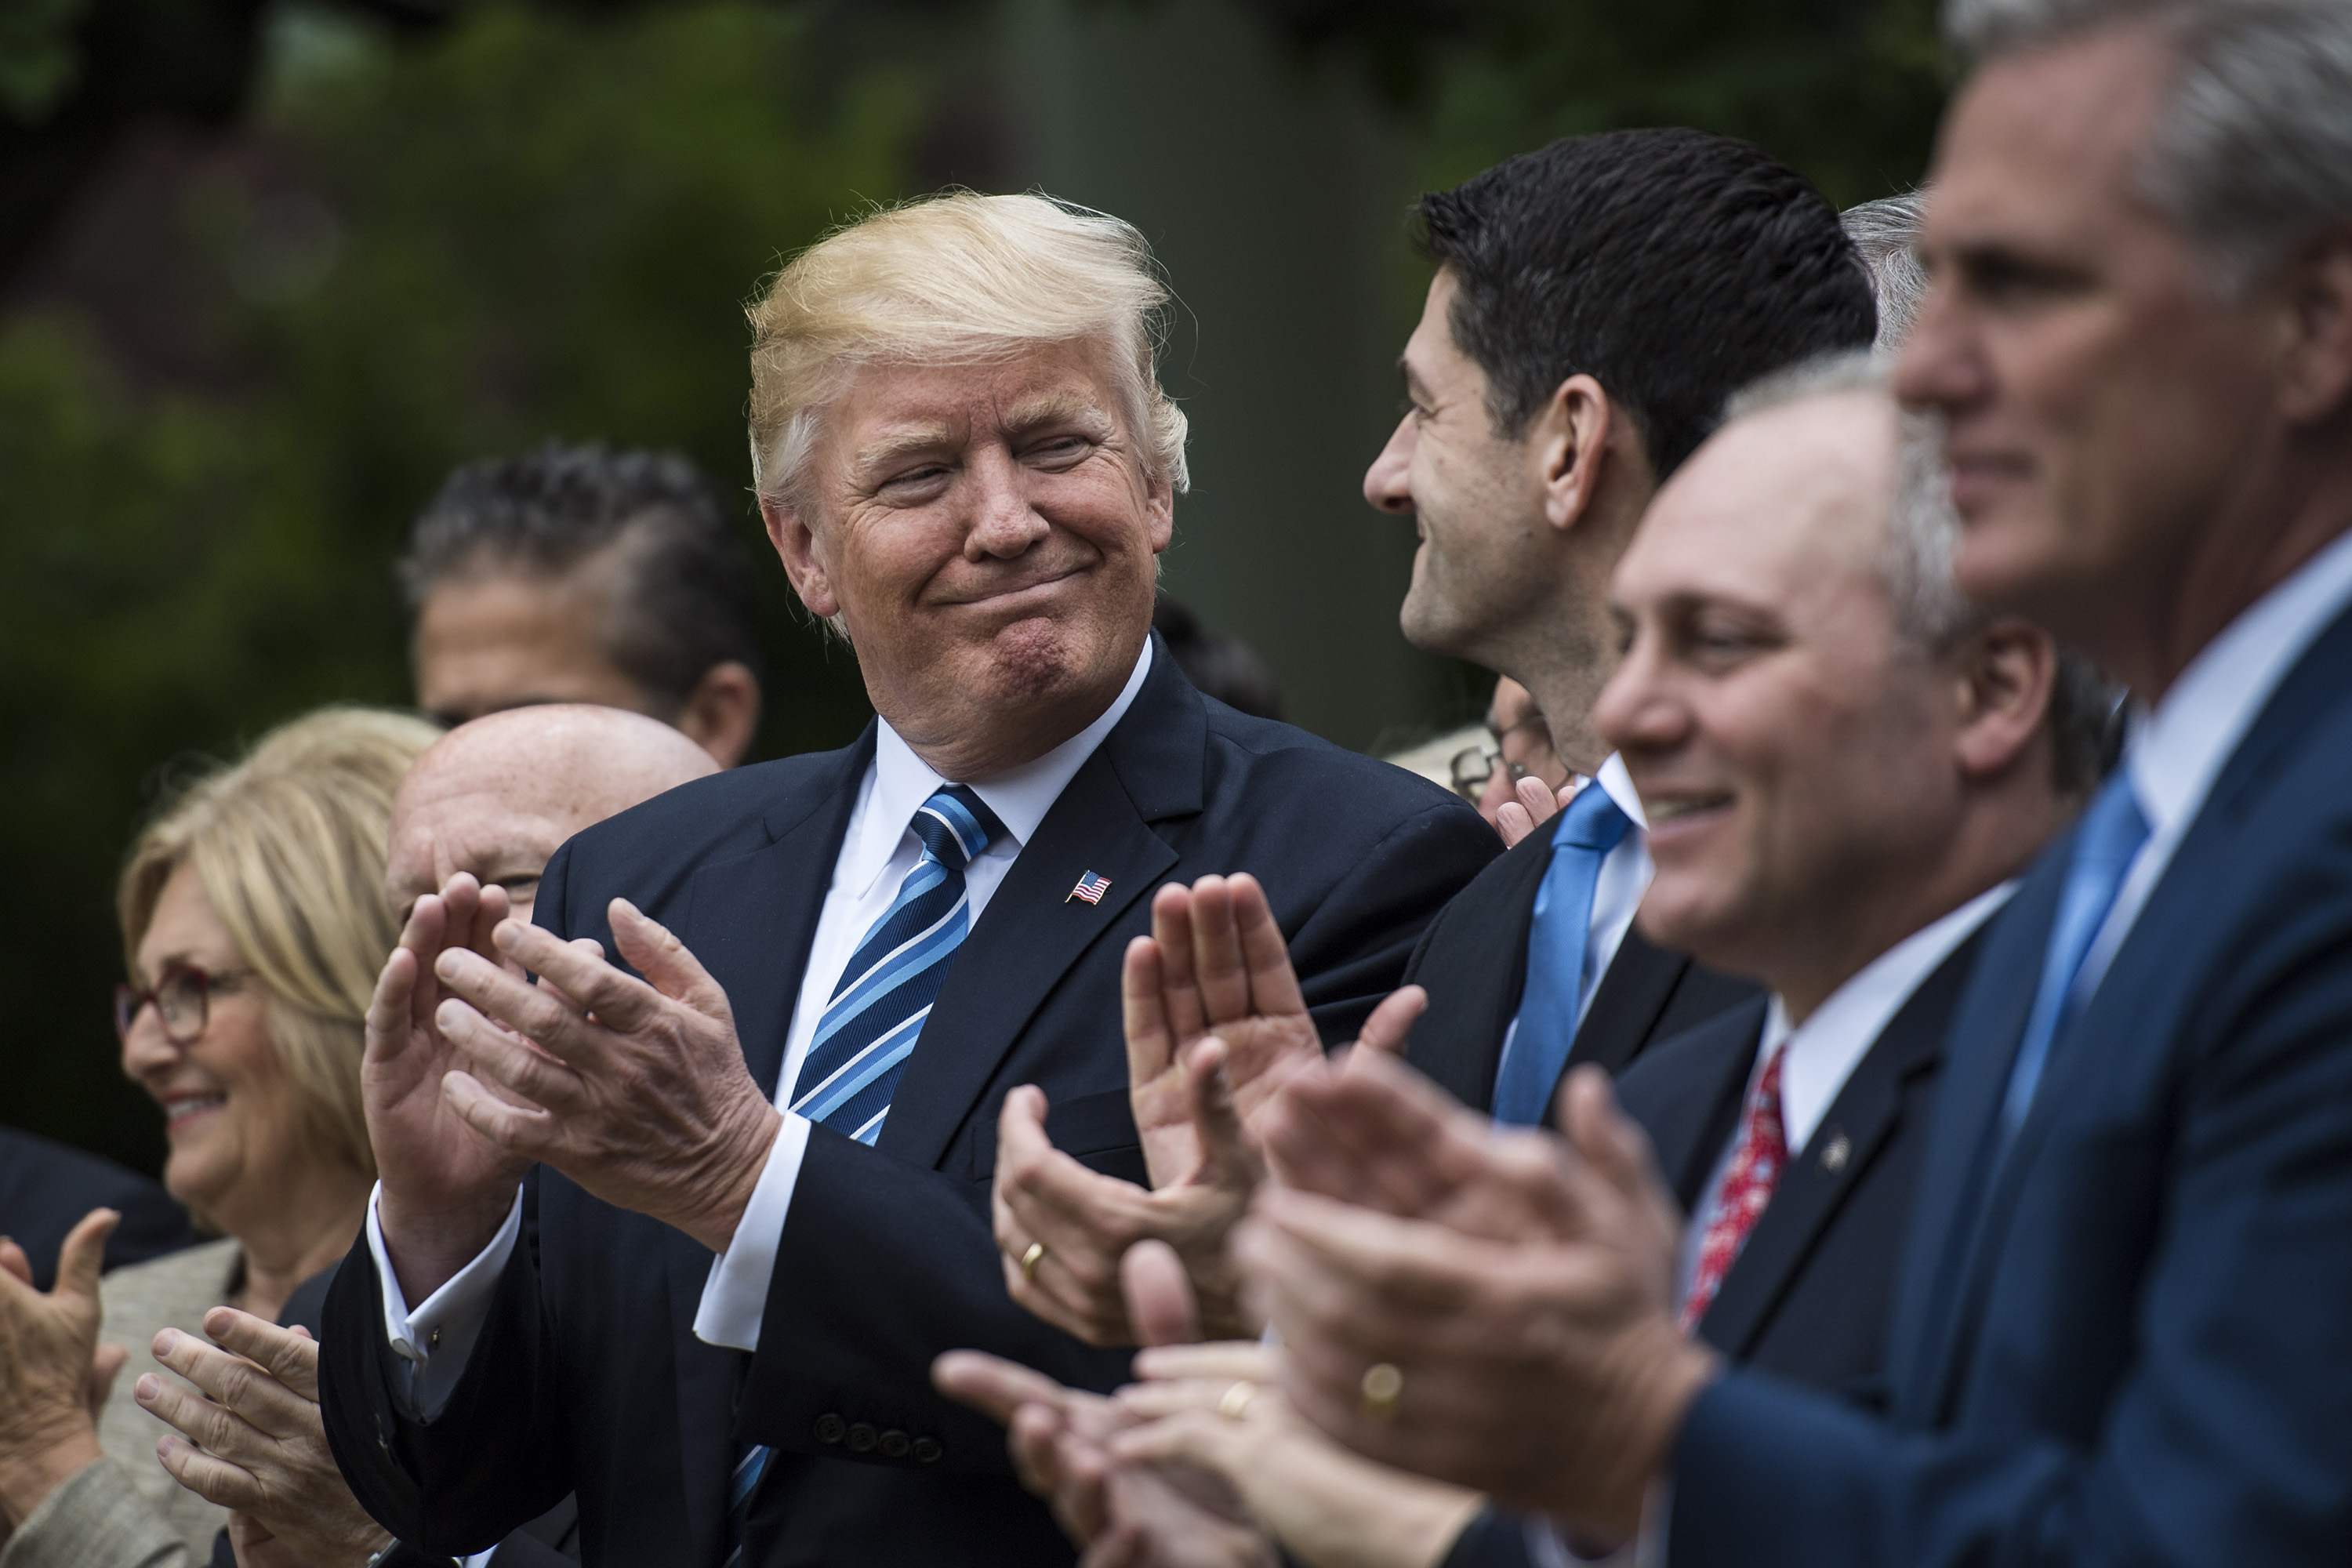 President Donald Trump looks to House Speaker Paul Ryan, R-Wis., after the House pushed through a health-care bill Thursday. The president, Ryan and others made remarks parising their efforts to upend the 2010 Affordable Care Act. (Washington Post)